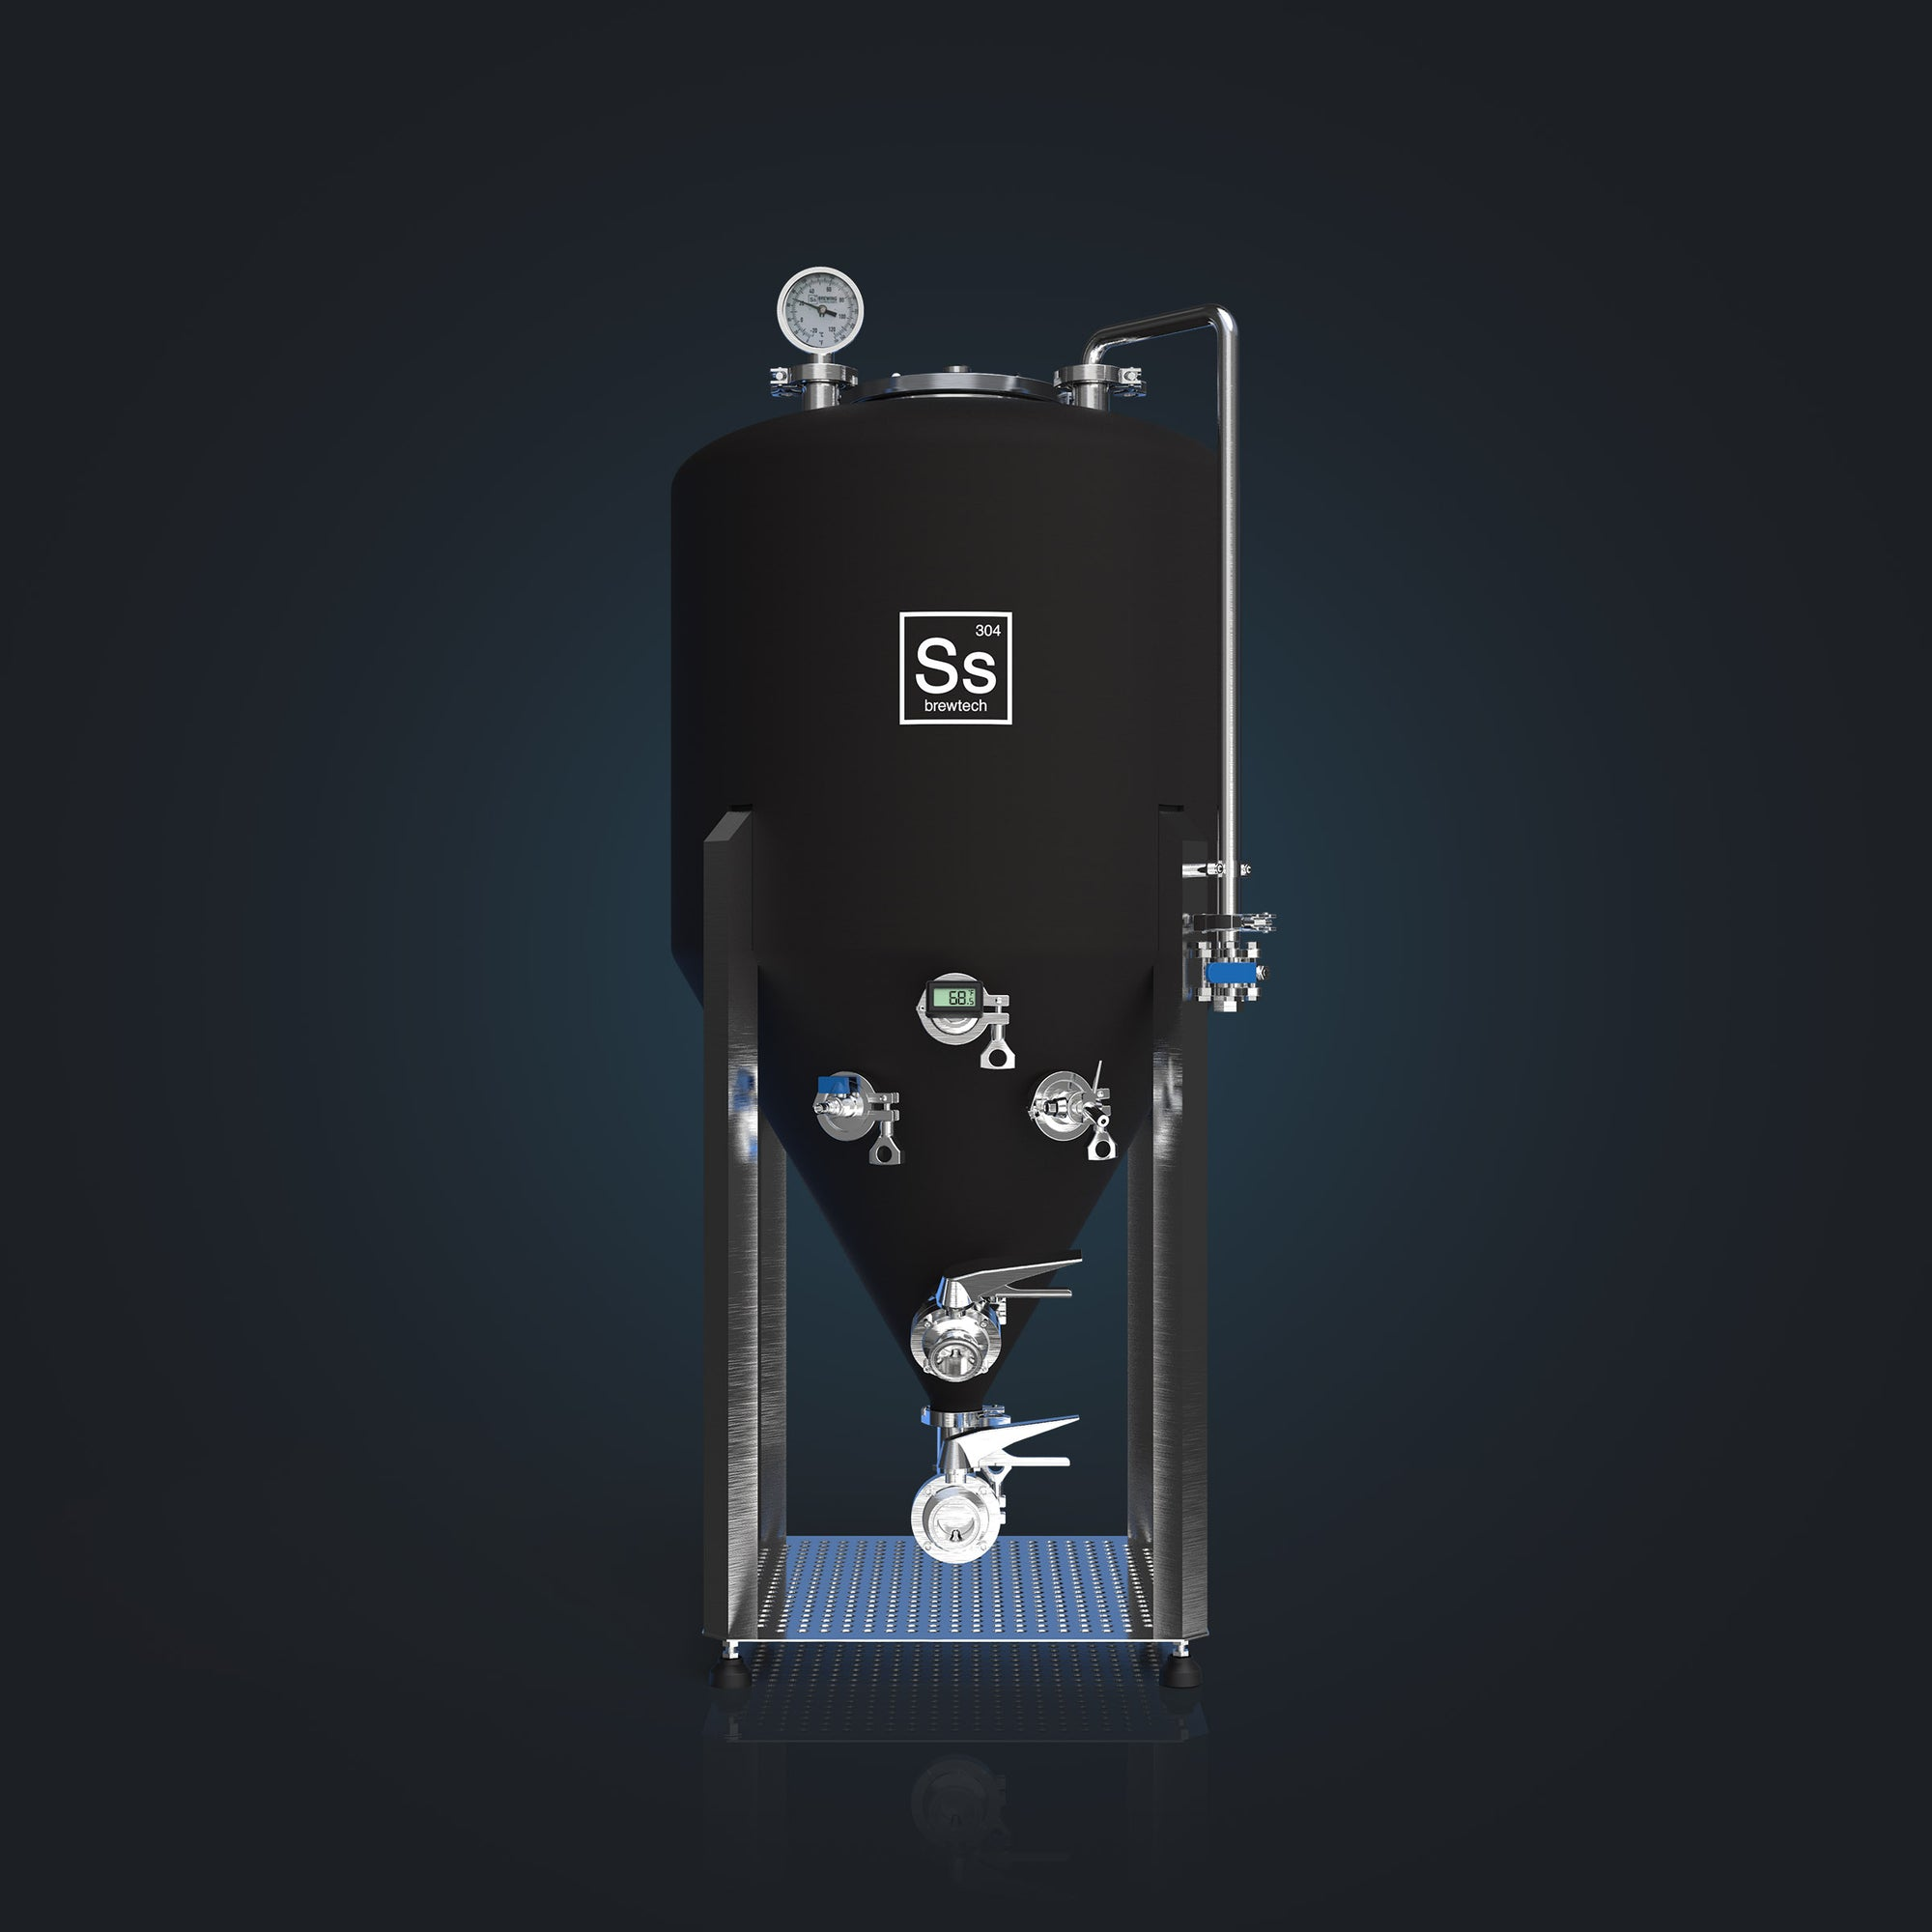 Pressurizable fermentation available to the home and nano brewer with the Ss Brewtech Unitank